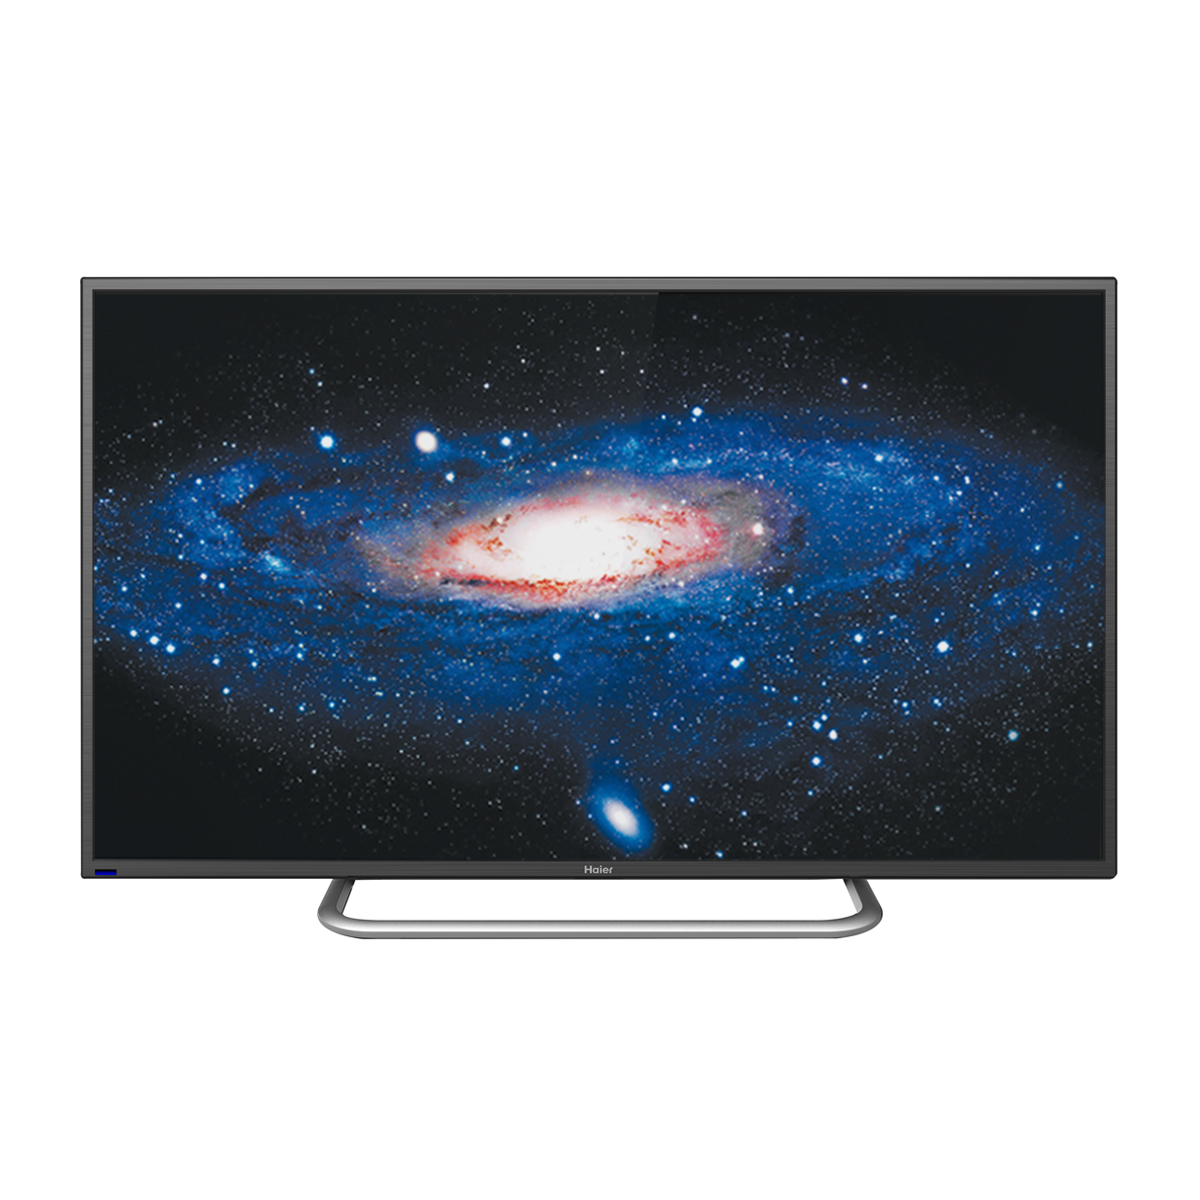 haier led tv le40b7000 price in pakistan. Black Bedroom Furniture Sets. Home Design Ideas